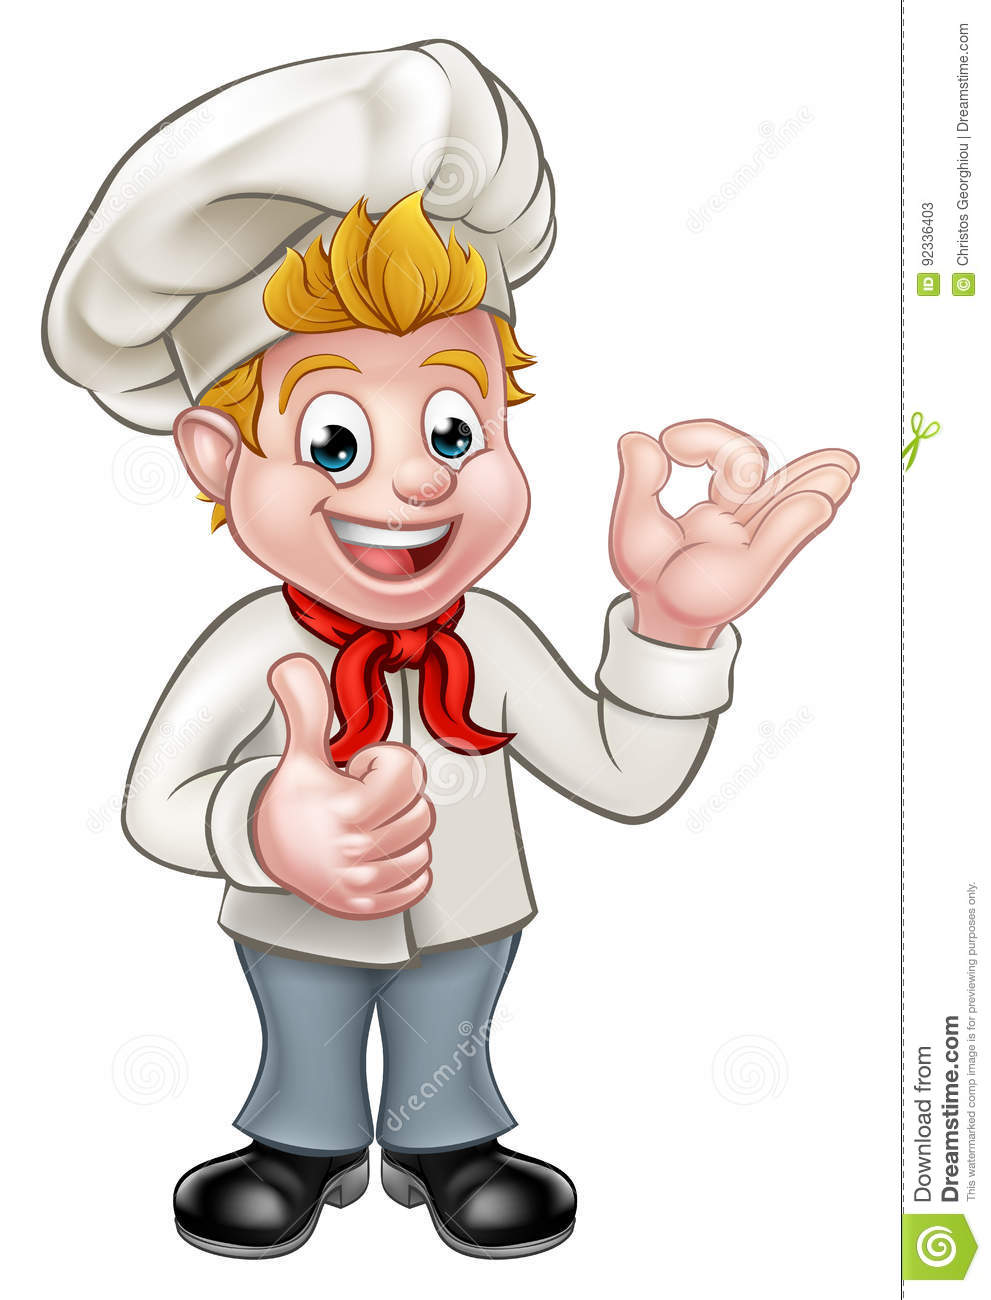 Cartoon Chef Or Baker Character Stock Vector - Image: 92336403